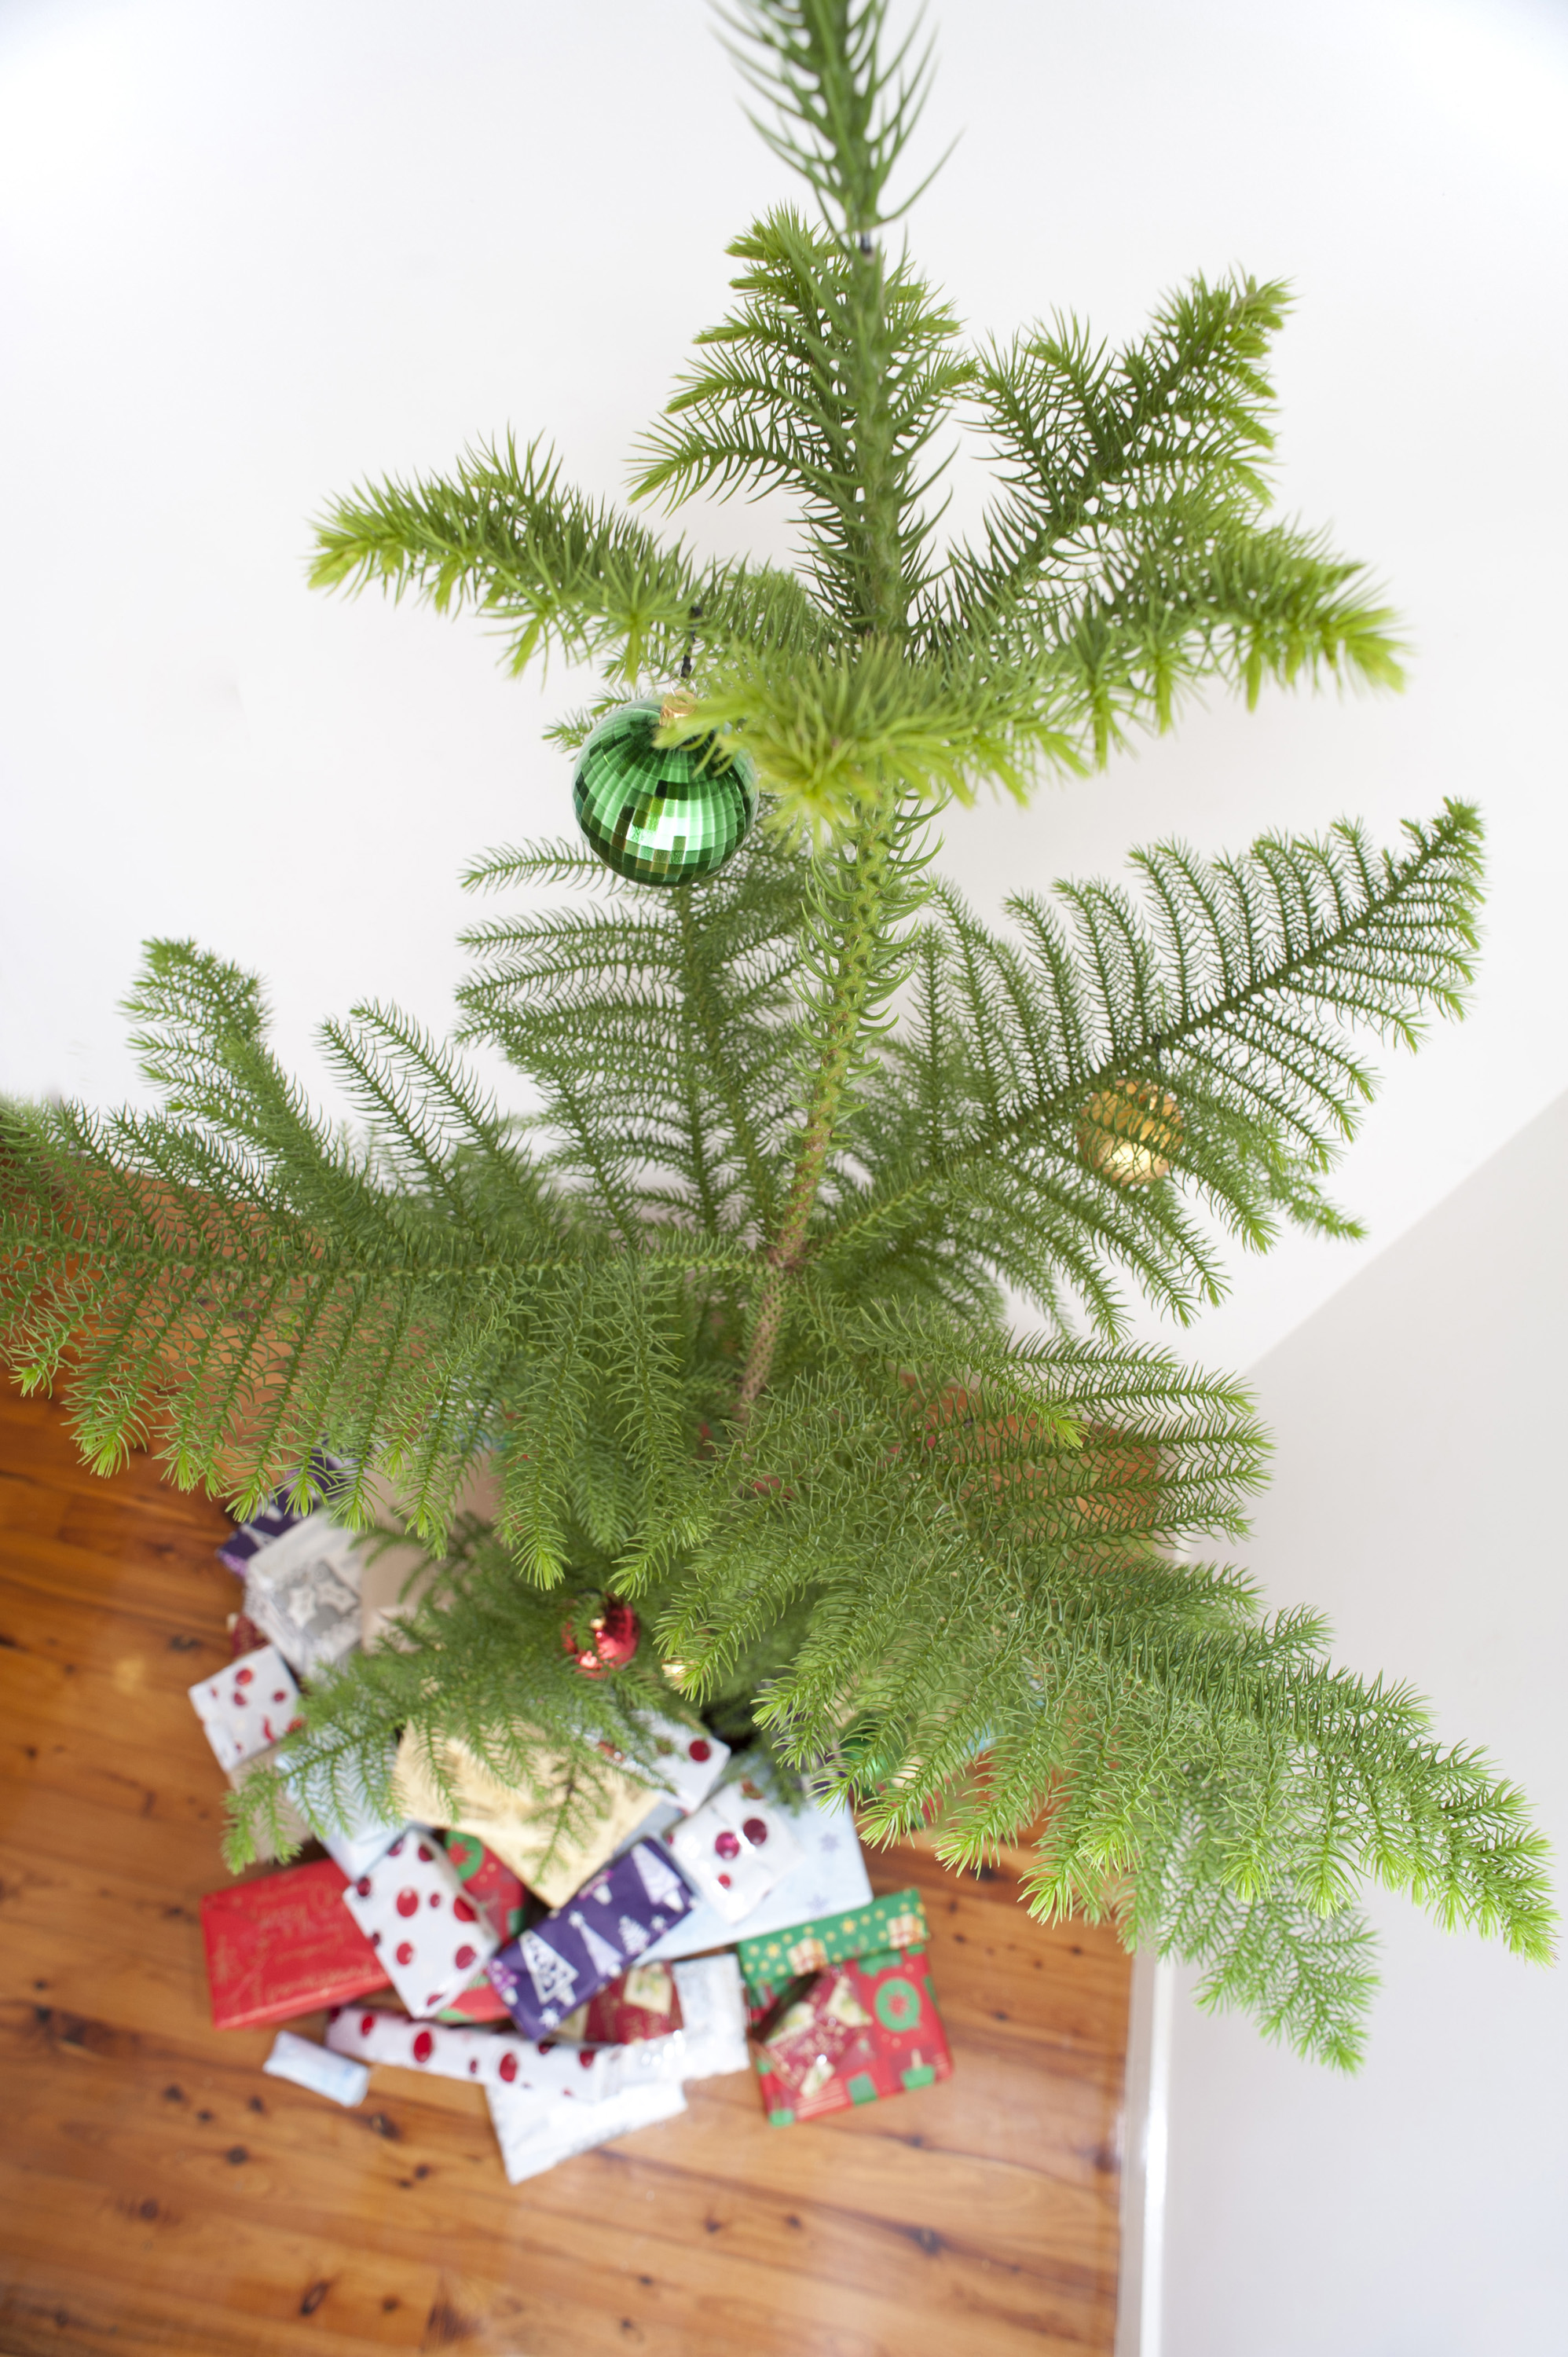 Photo of Natural pine Christmas tree and gifts | Free christmas images